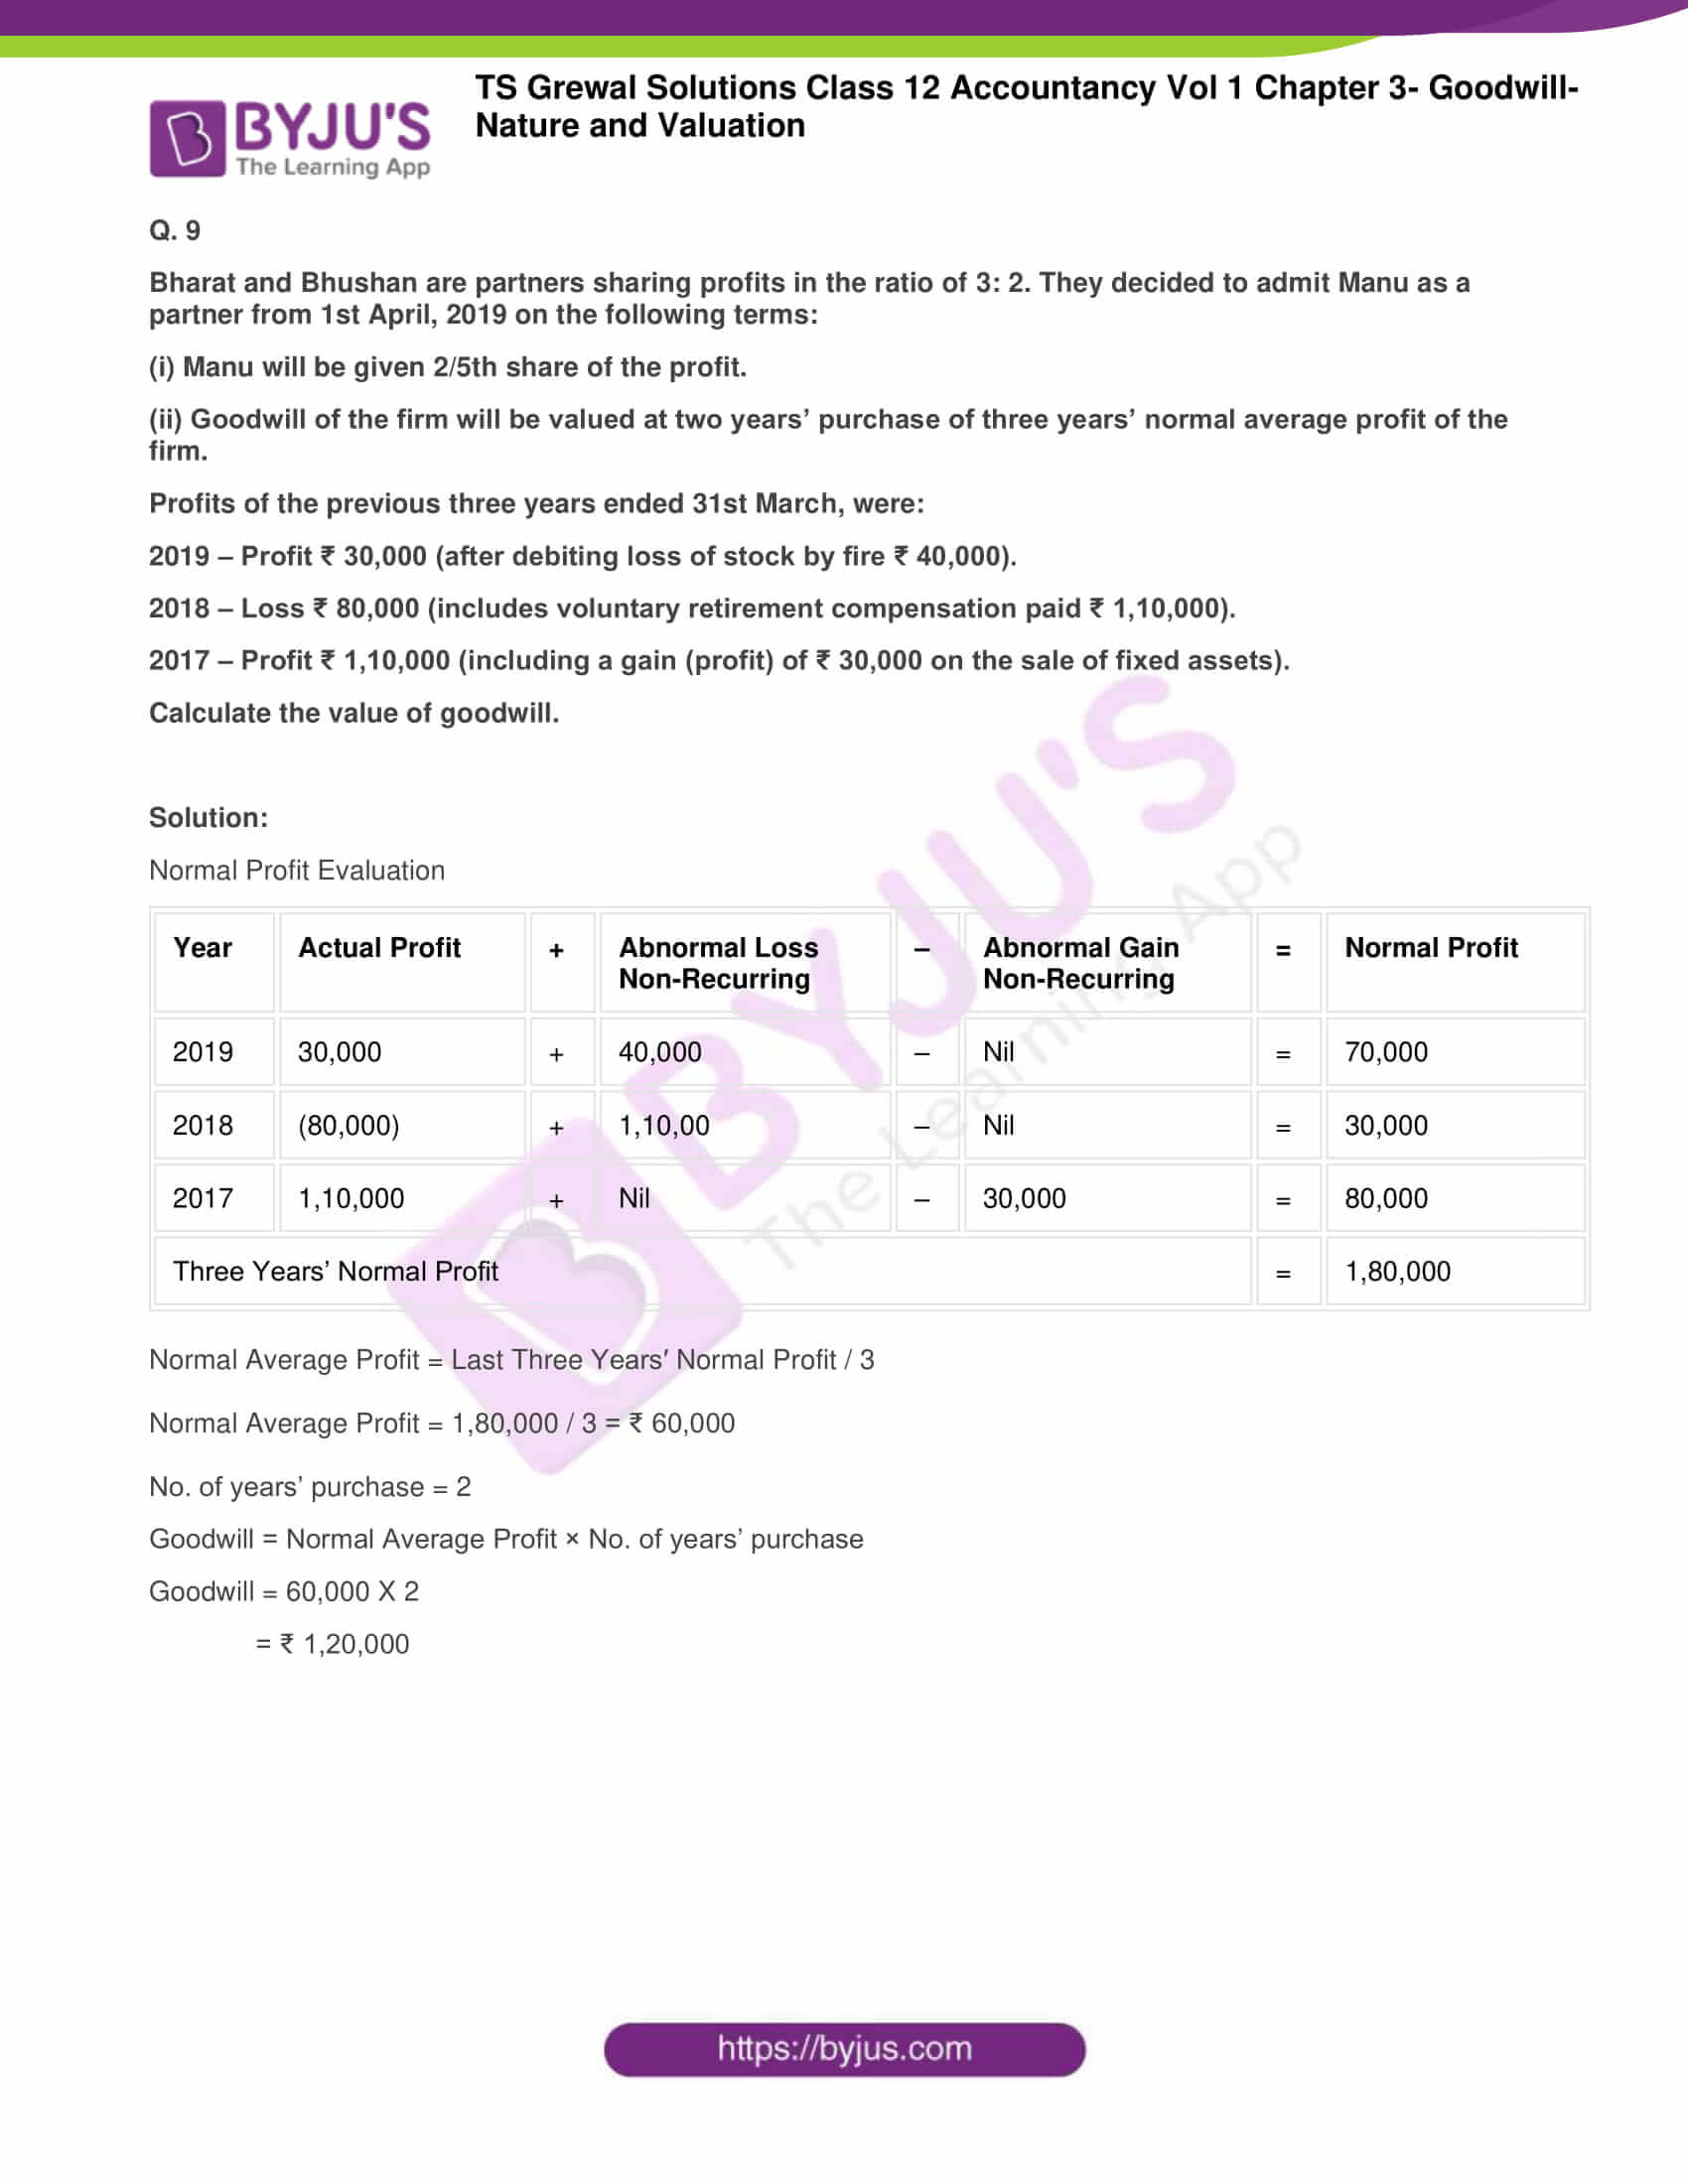 ts grewal solutions for class 12 accountancy vol 1 chapter 307